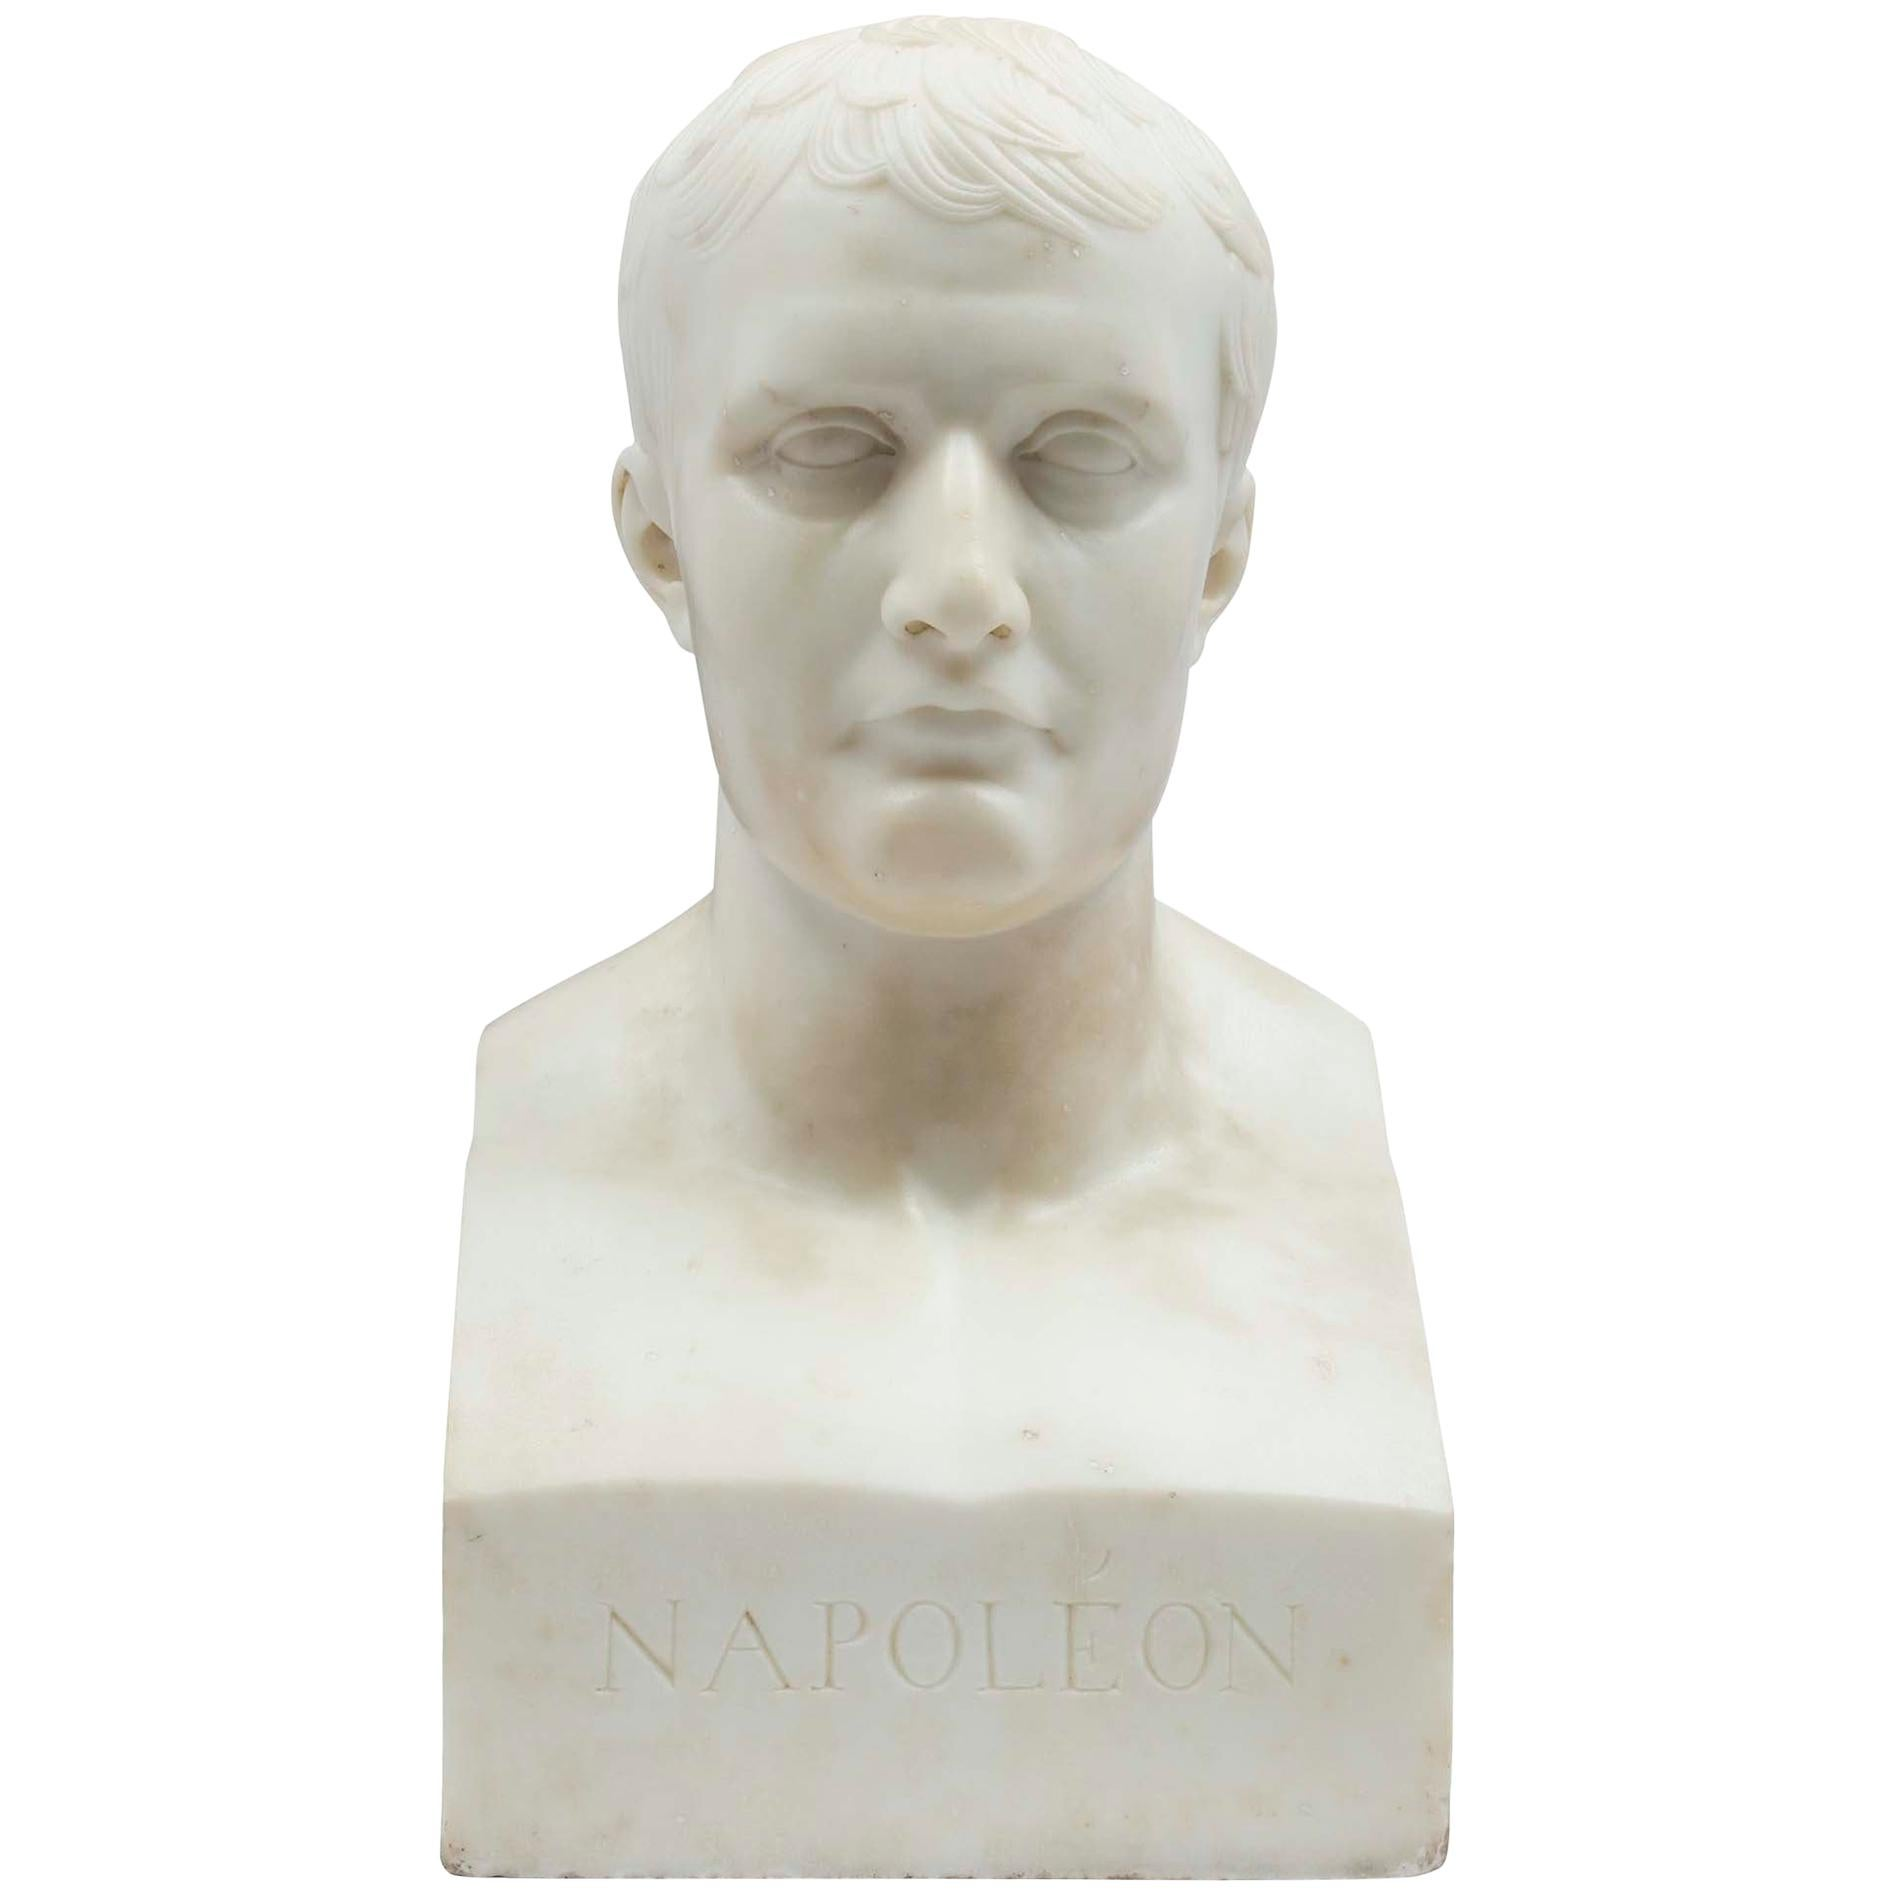 French 19th Century Bust of Napoleon in White Carrara Marble